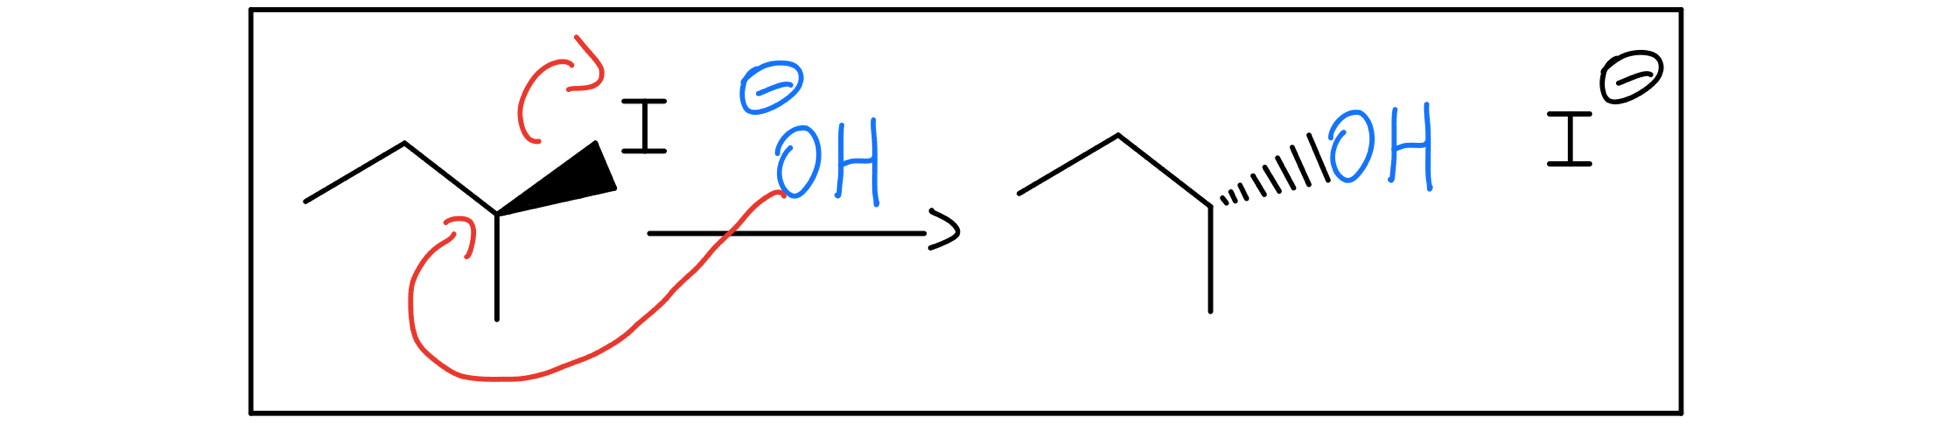 Hydroxide and 2-iodobutane